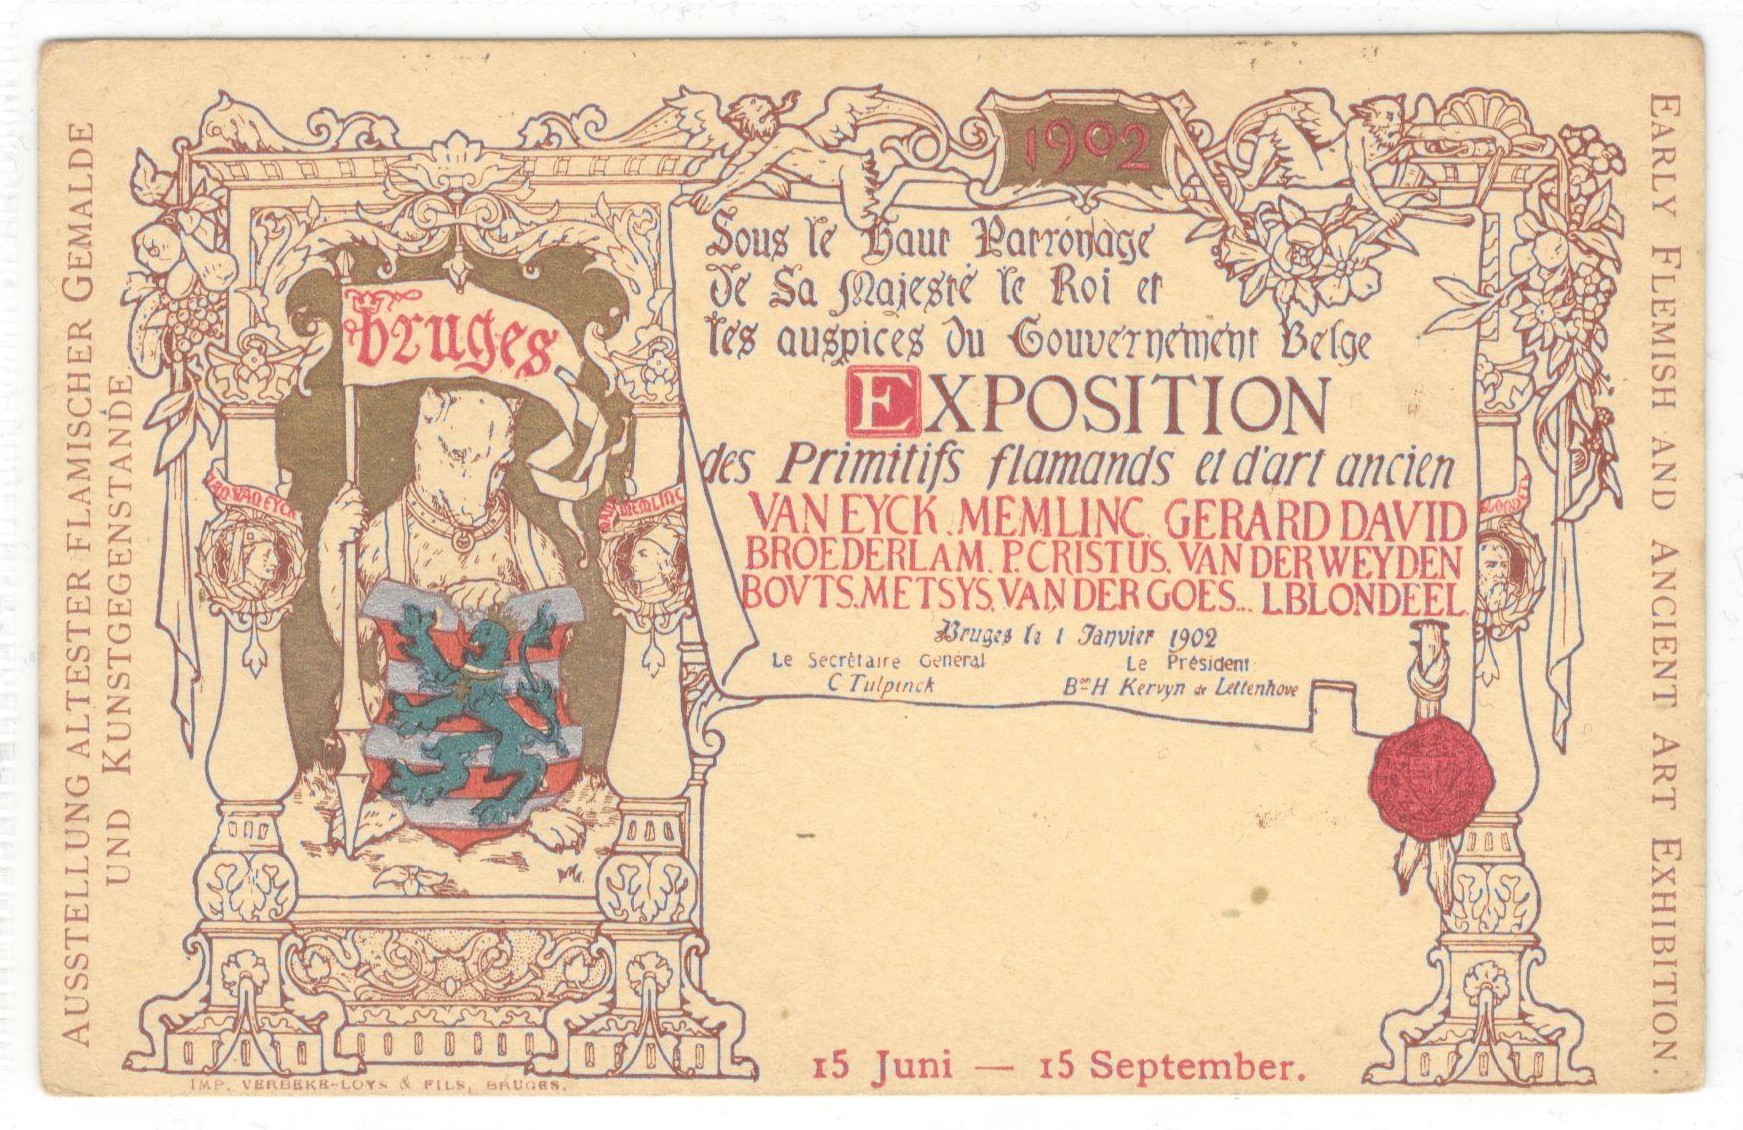 Lot 22 - 1902 EARLY FLEMISH AND ANCIENT ART EXHIBITION POSTCARD